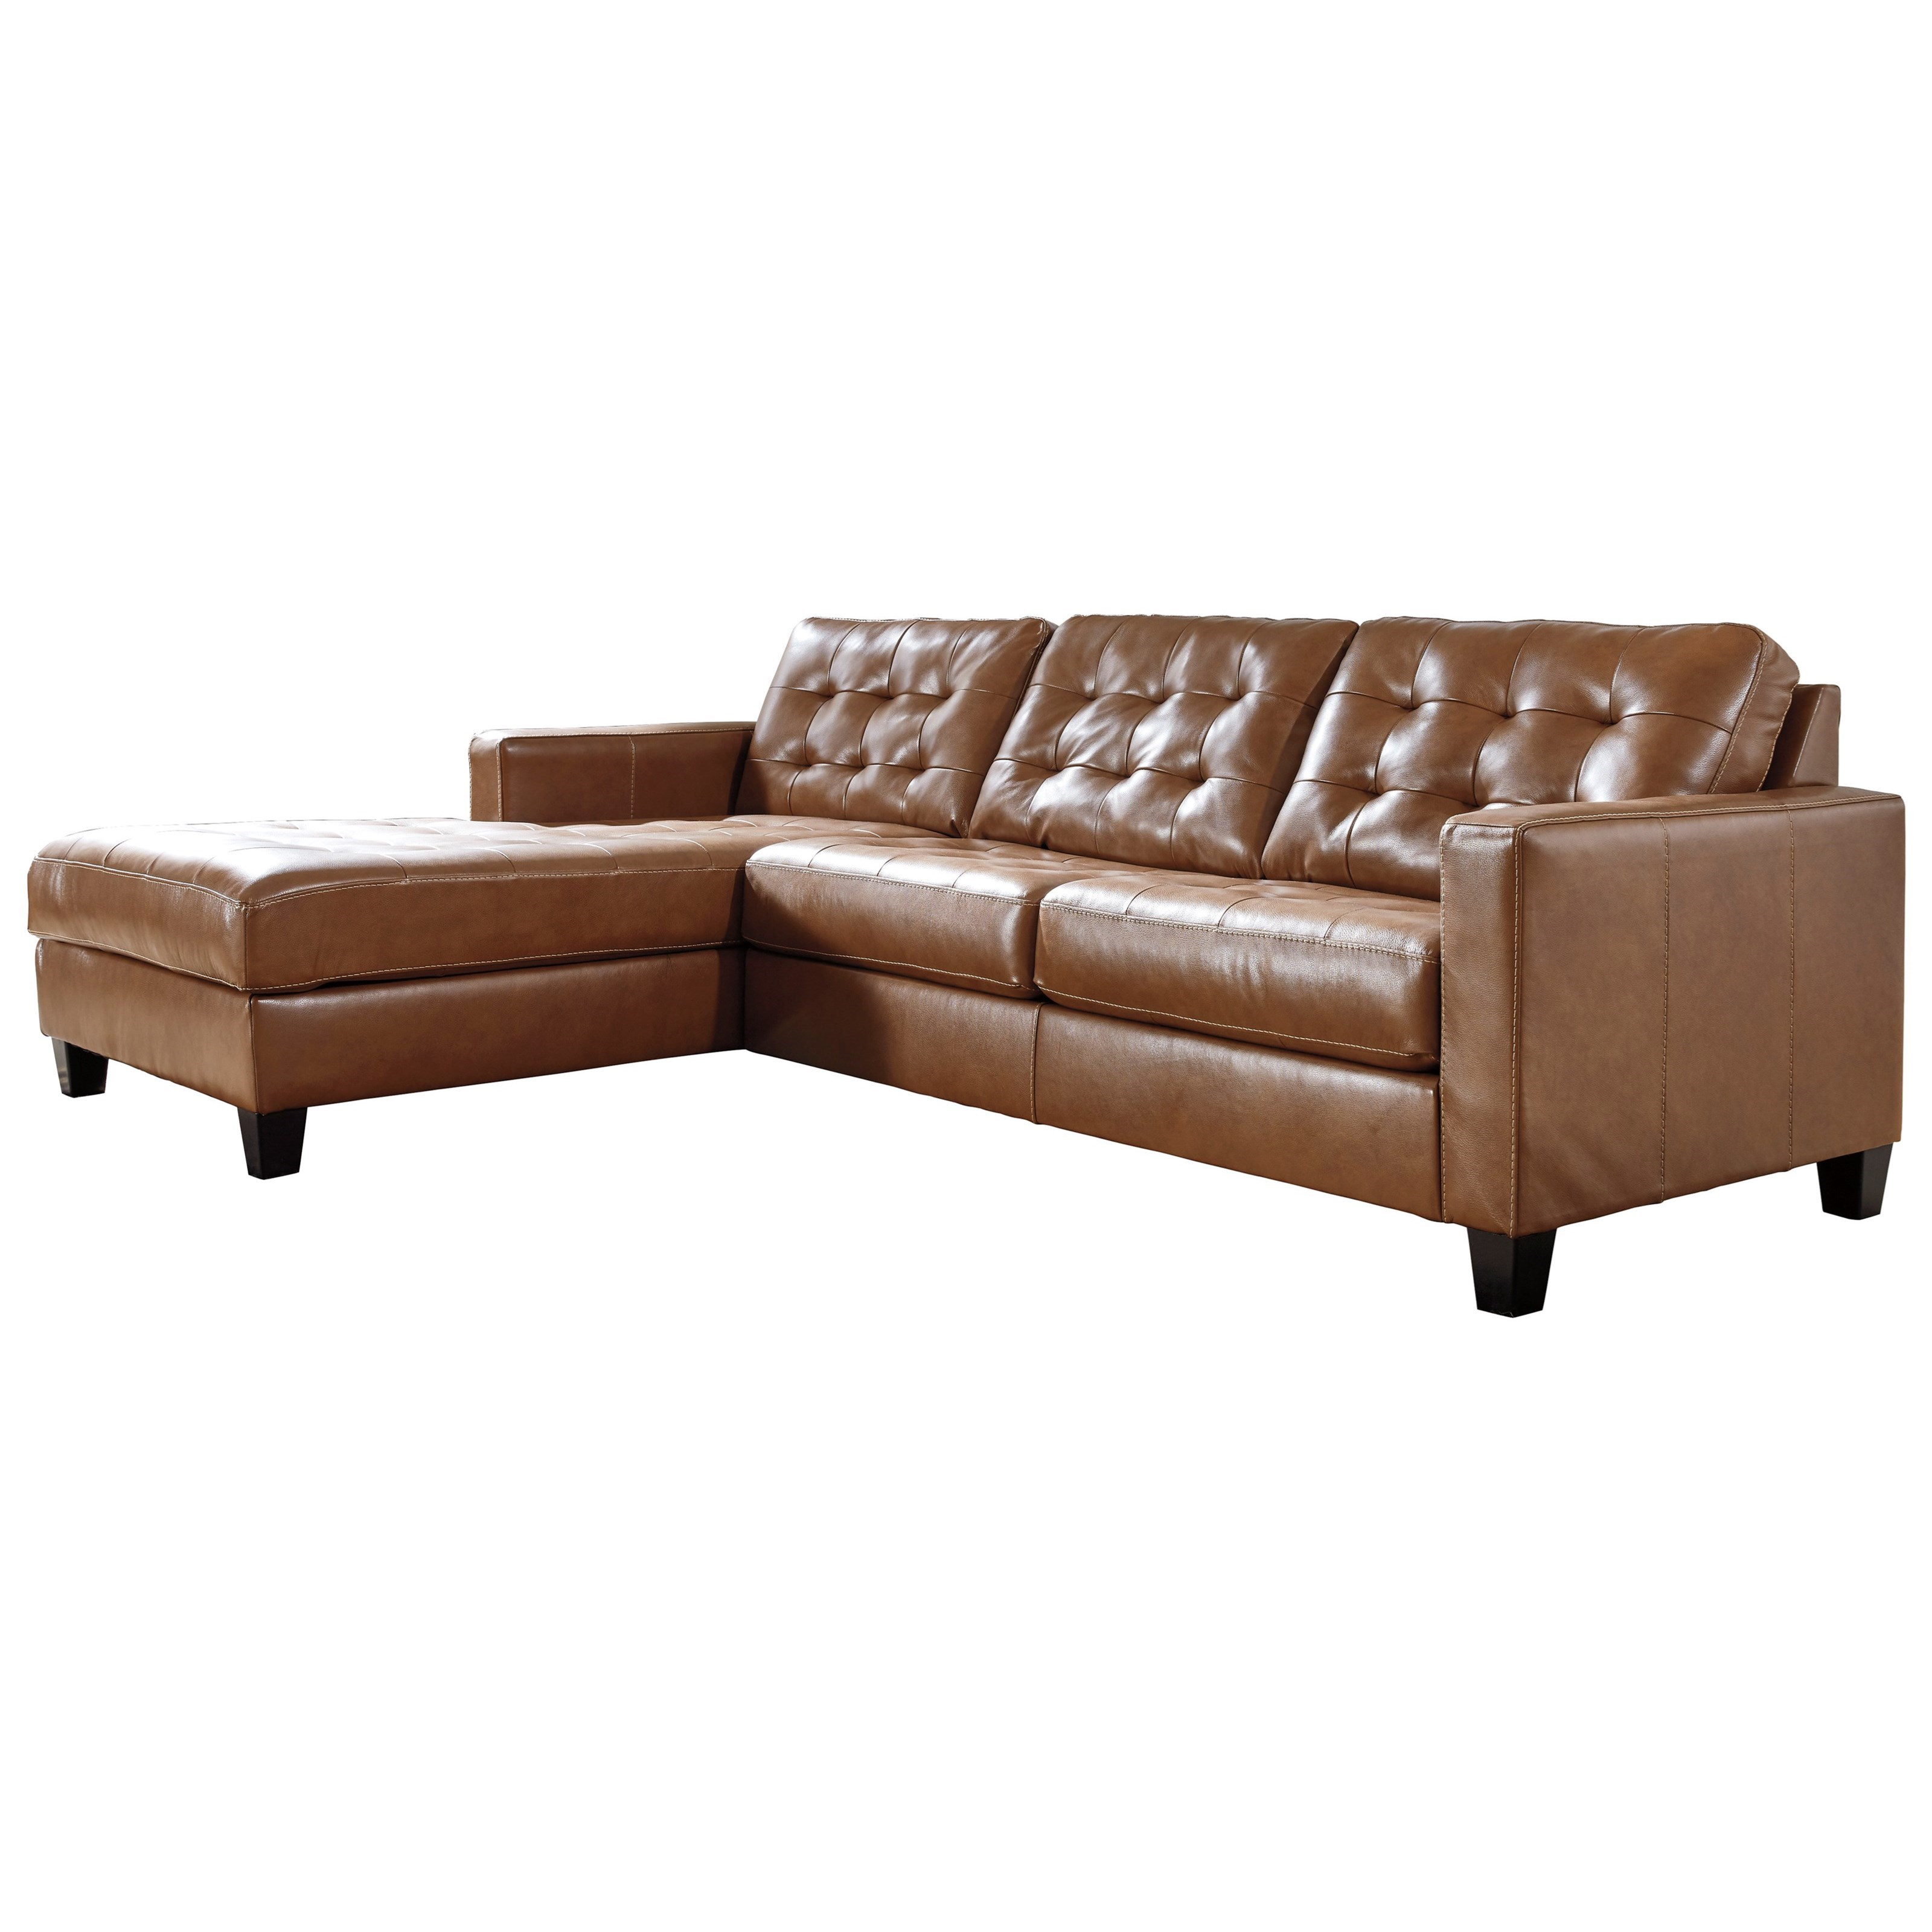 Baskove 2-Piece Sectional by Signature Design by Ashley at Rife's Home Furniture